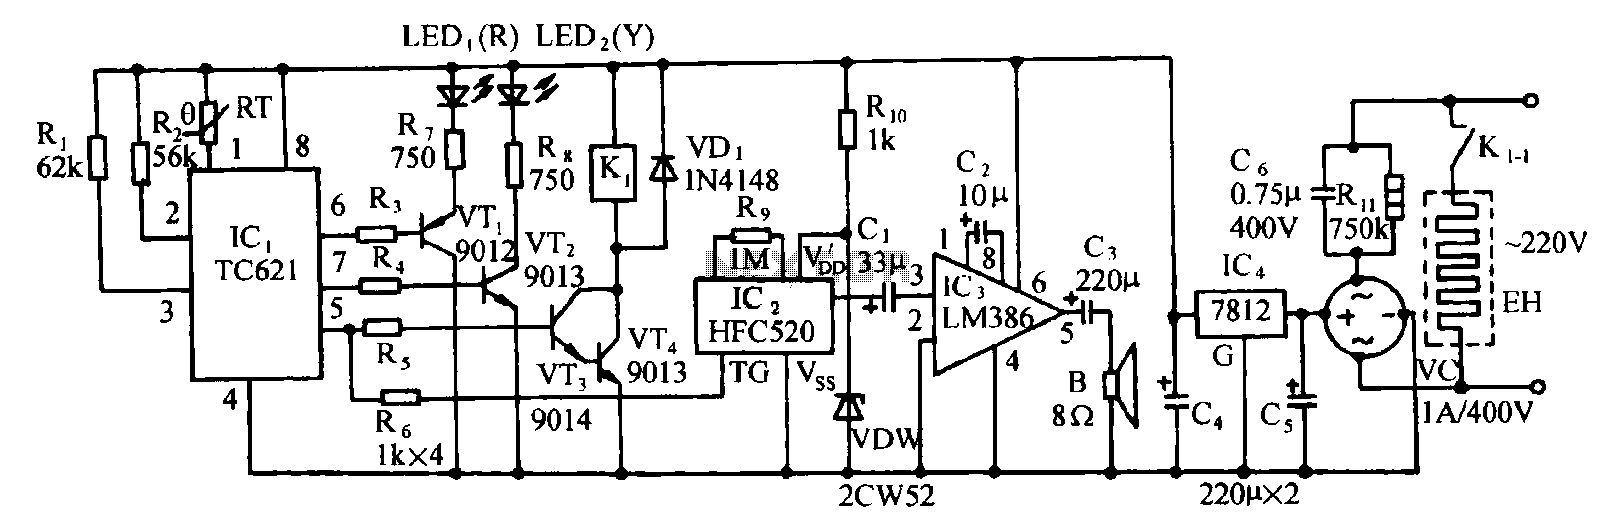 electronic wiring diagram wiring diagram and hernes electronic circuit diagrams the wiring diagram